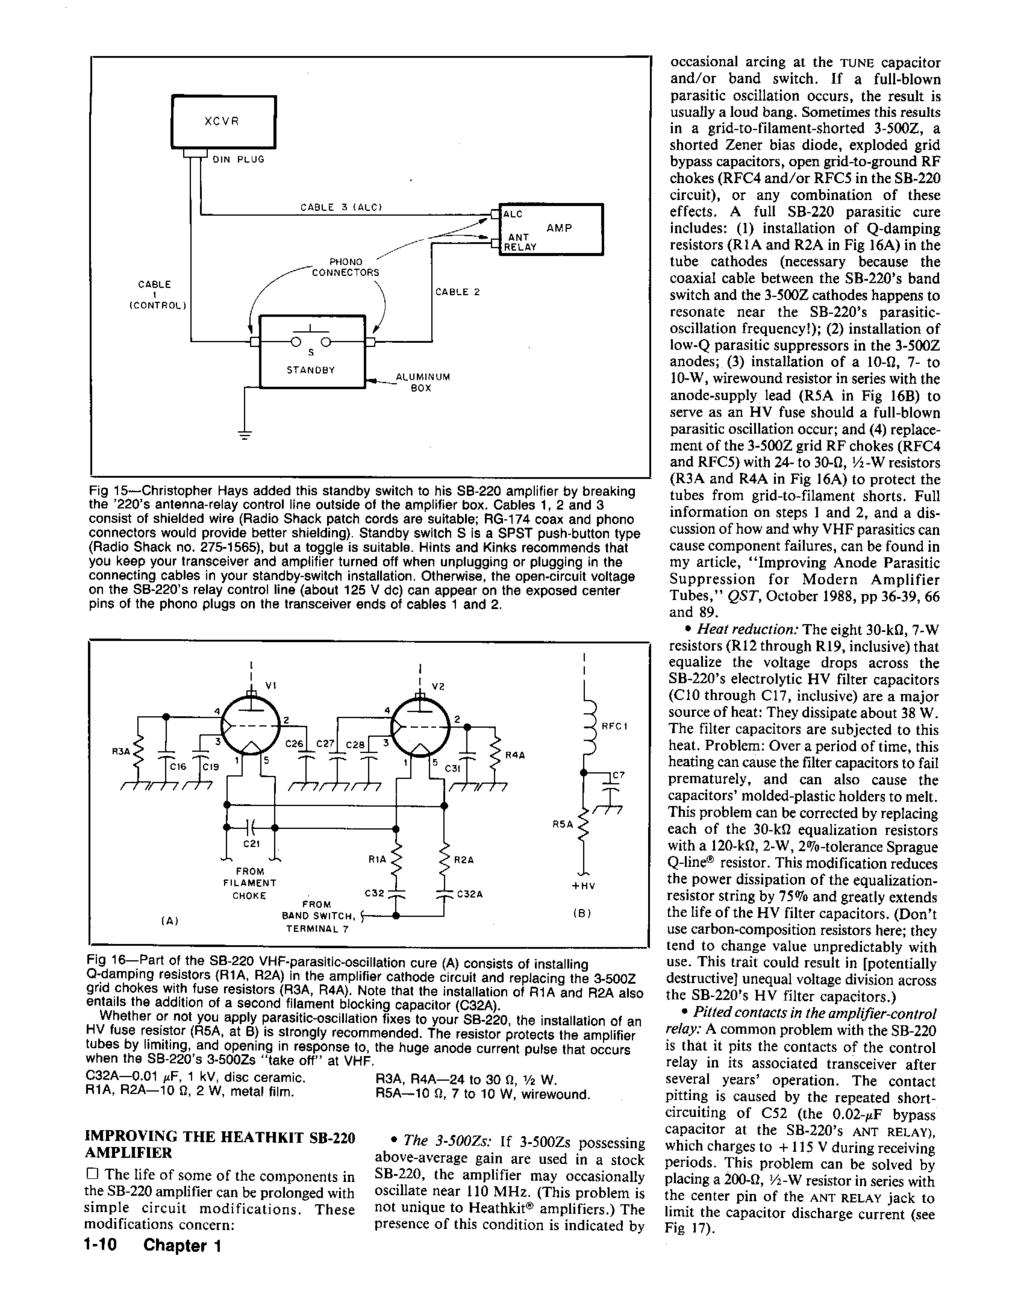 Hints And Kinks For The Radio Amateur Pdf Wire Connector Plug Motorcycle Car Marine 10cm Wirein Wiring Harness Fig 15 Christopher Hays Added This Standby Switch To His 88 220 Amplifier By